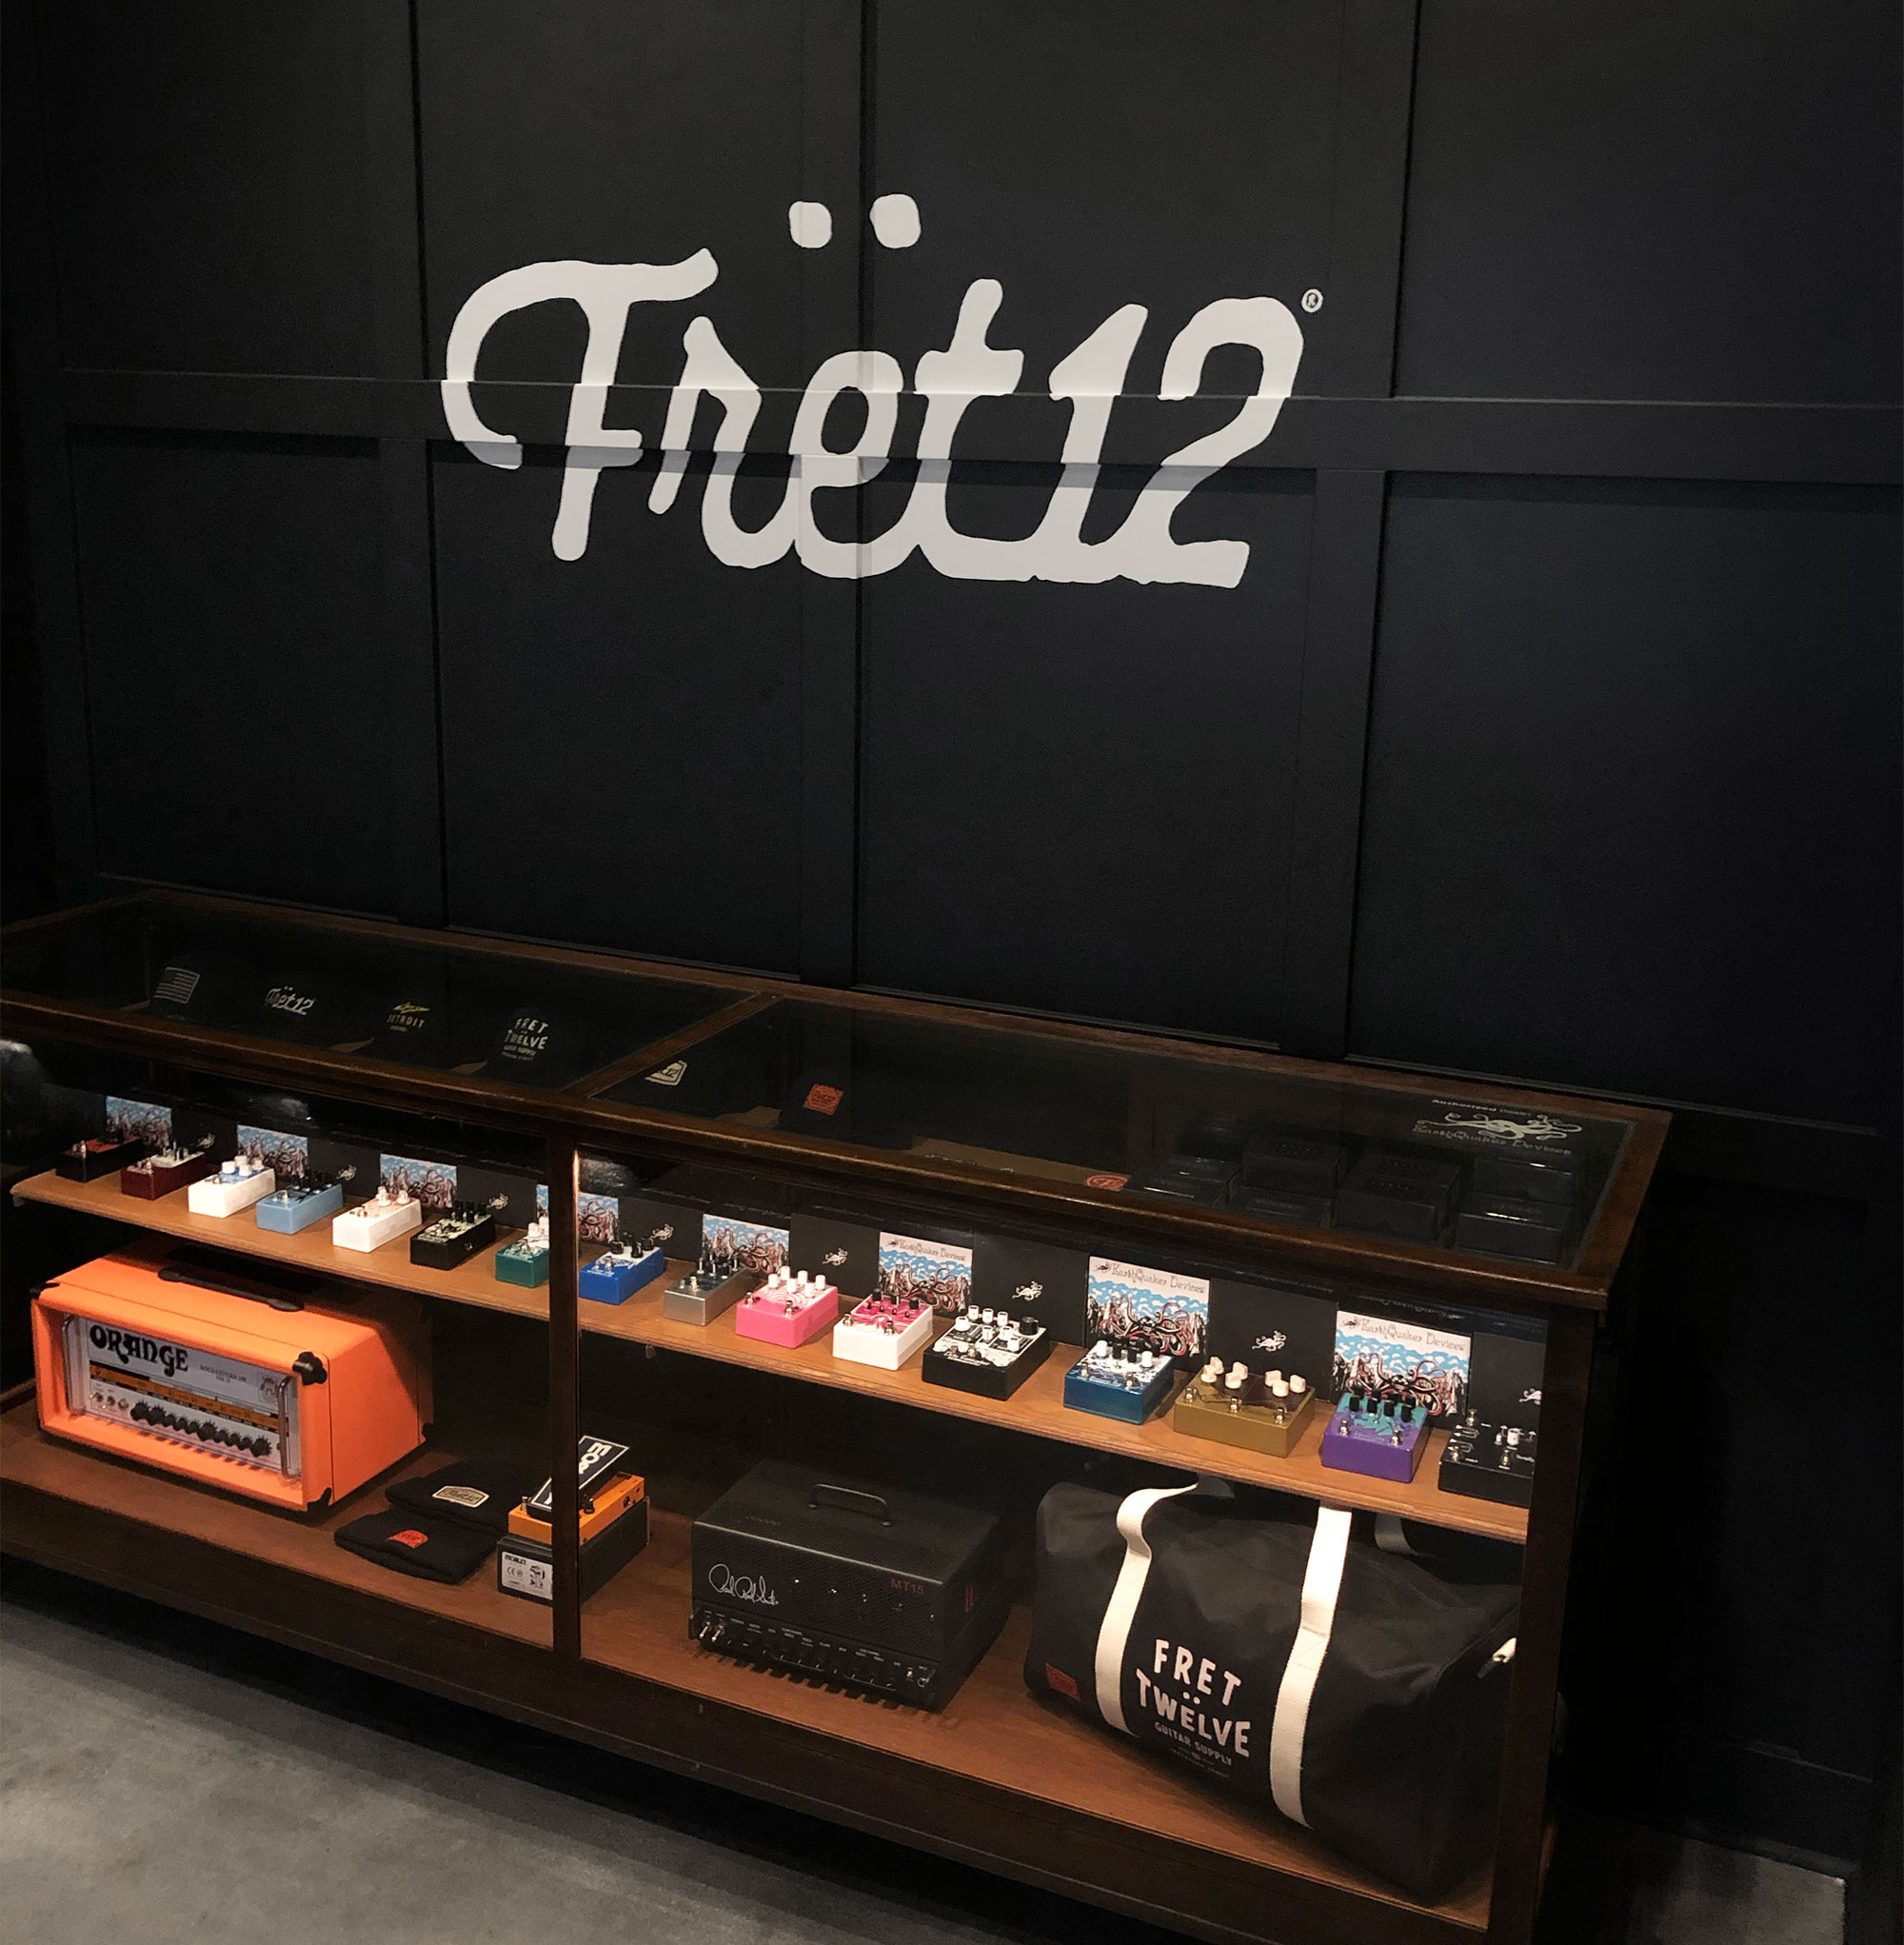 FRET12 is stoked to be an official #EarthquakerDevices dealer